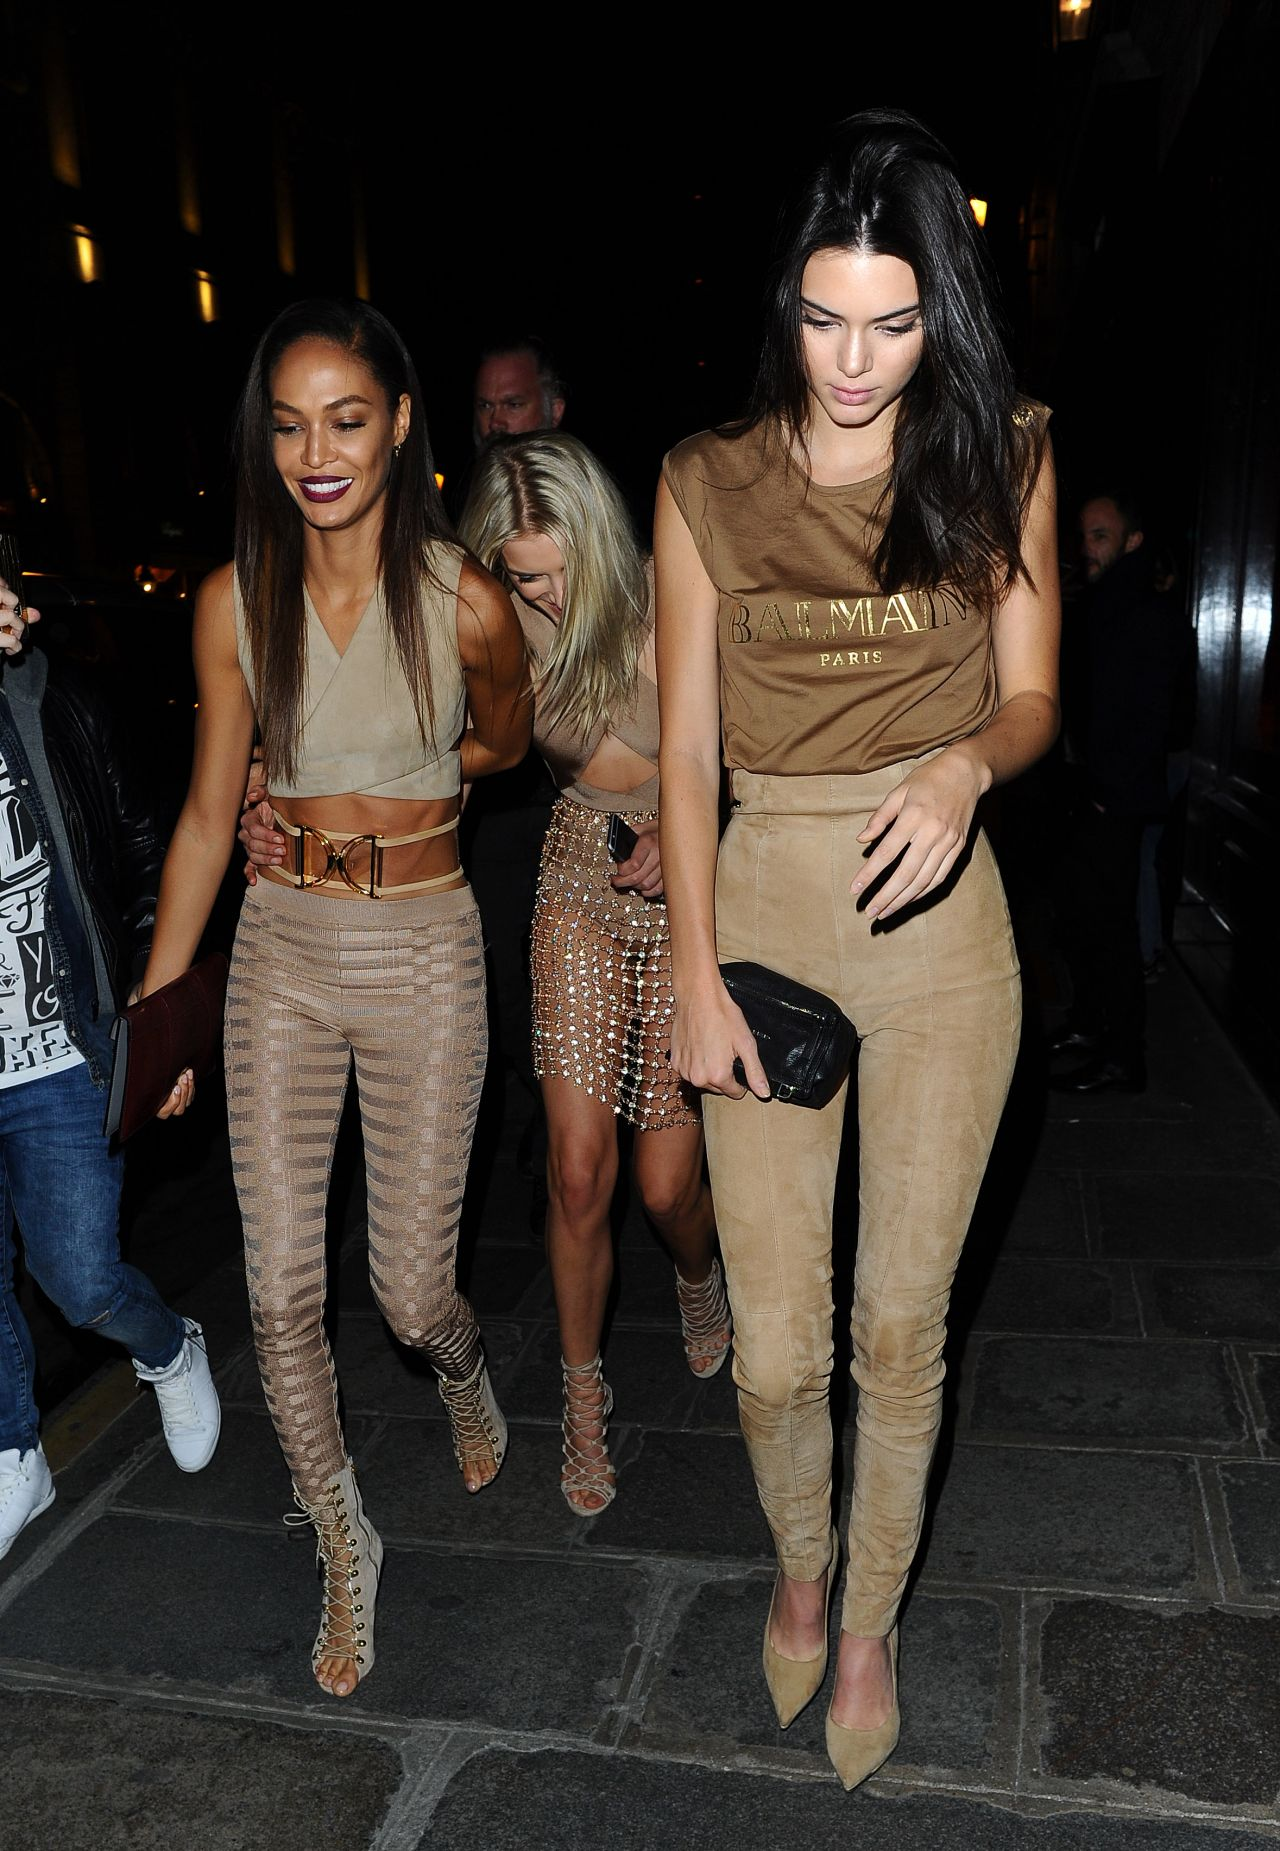 kendall-jenner-lily-donaldson-joan-smalls-leaving-costes-bar-in-paris-october-2015_6